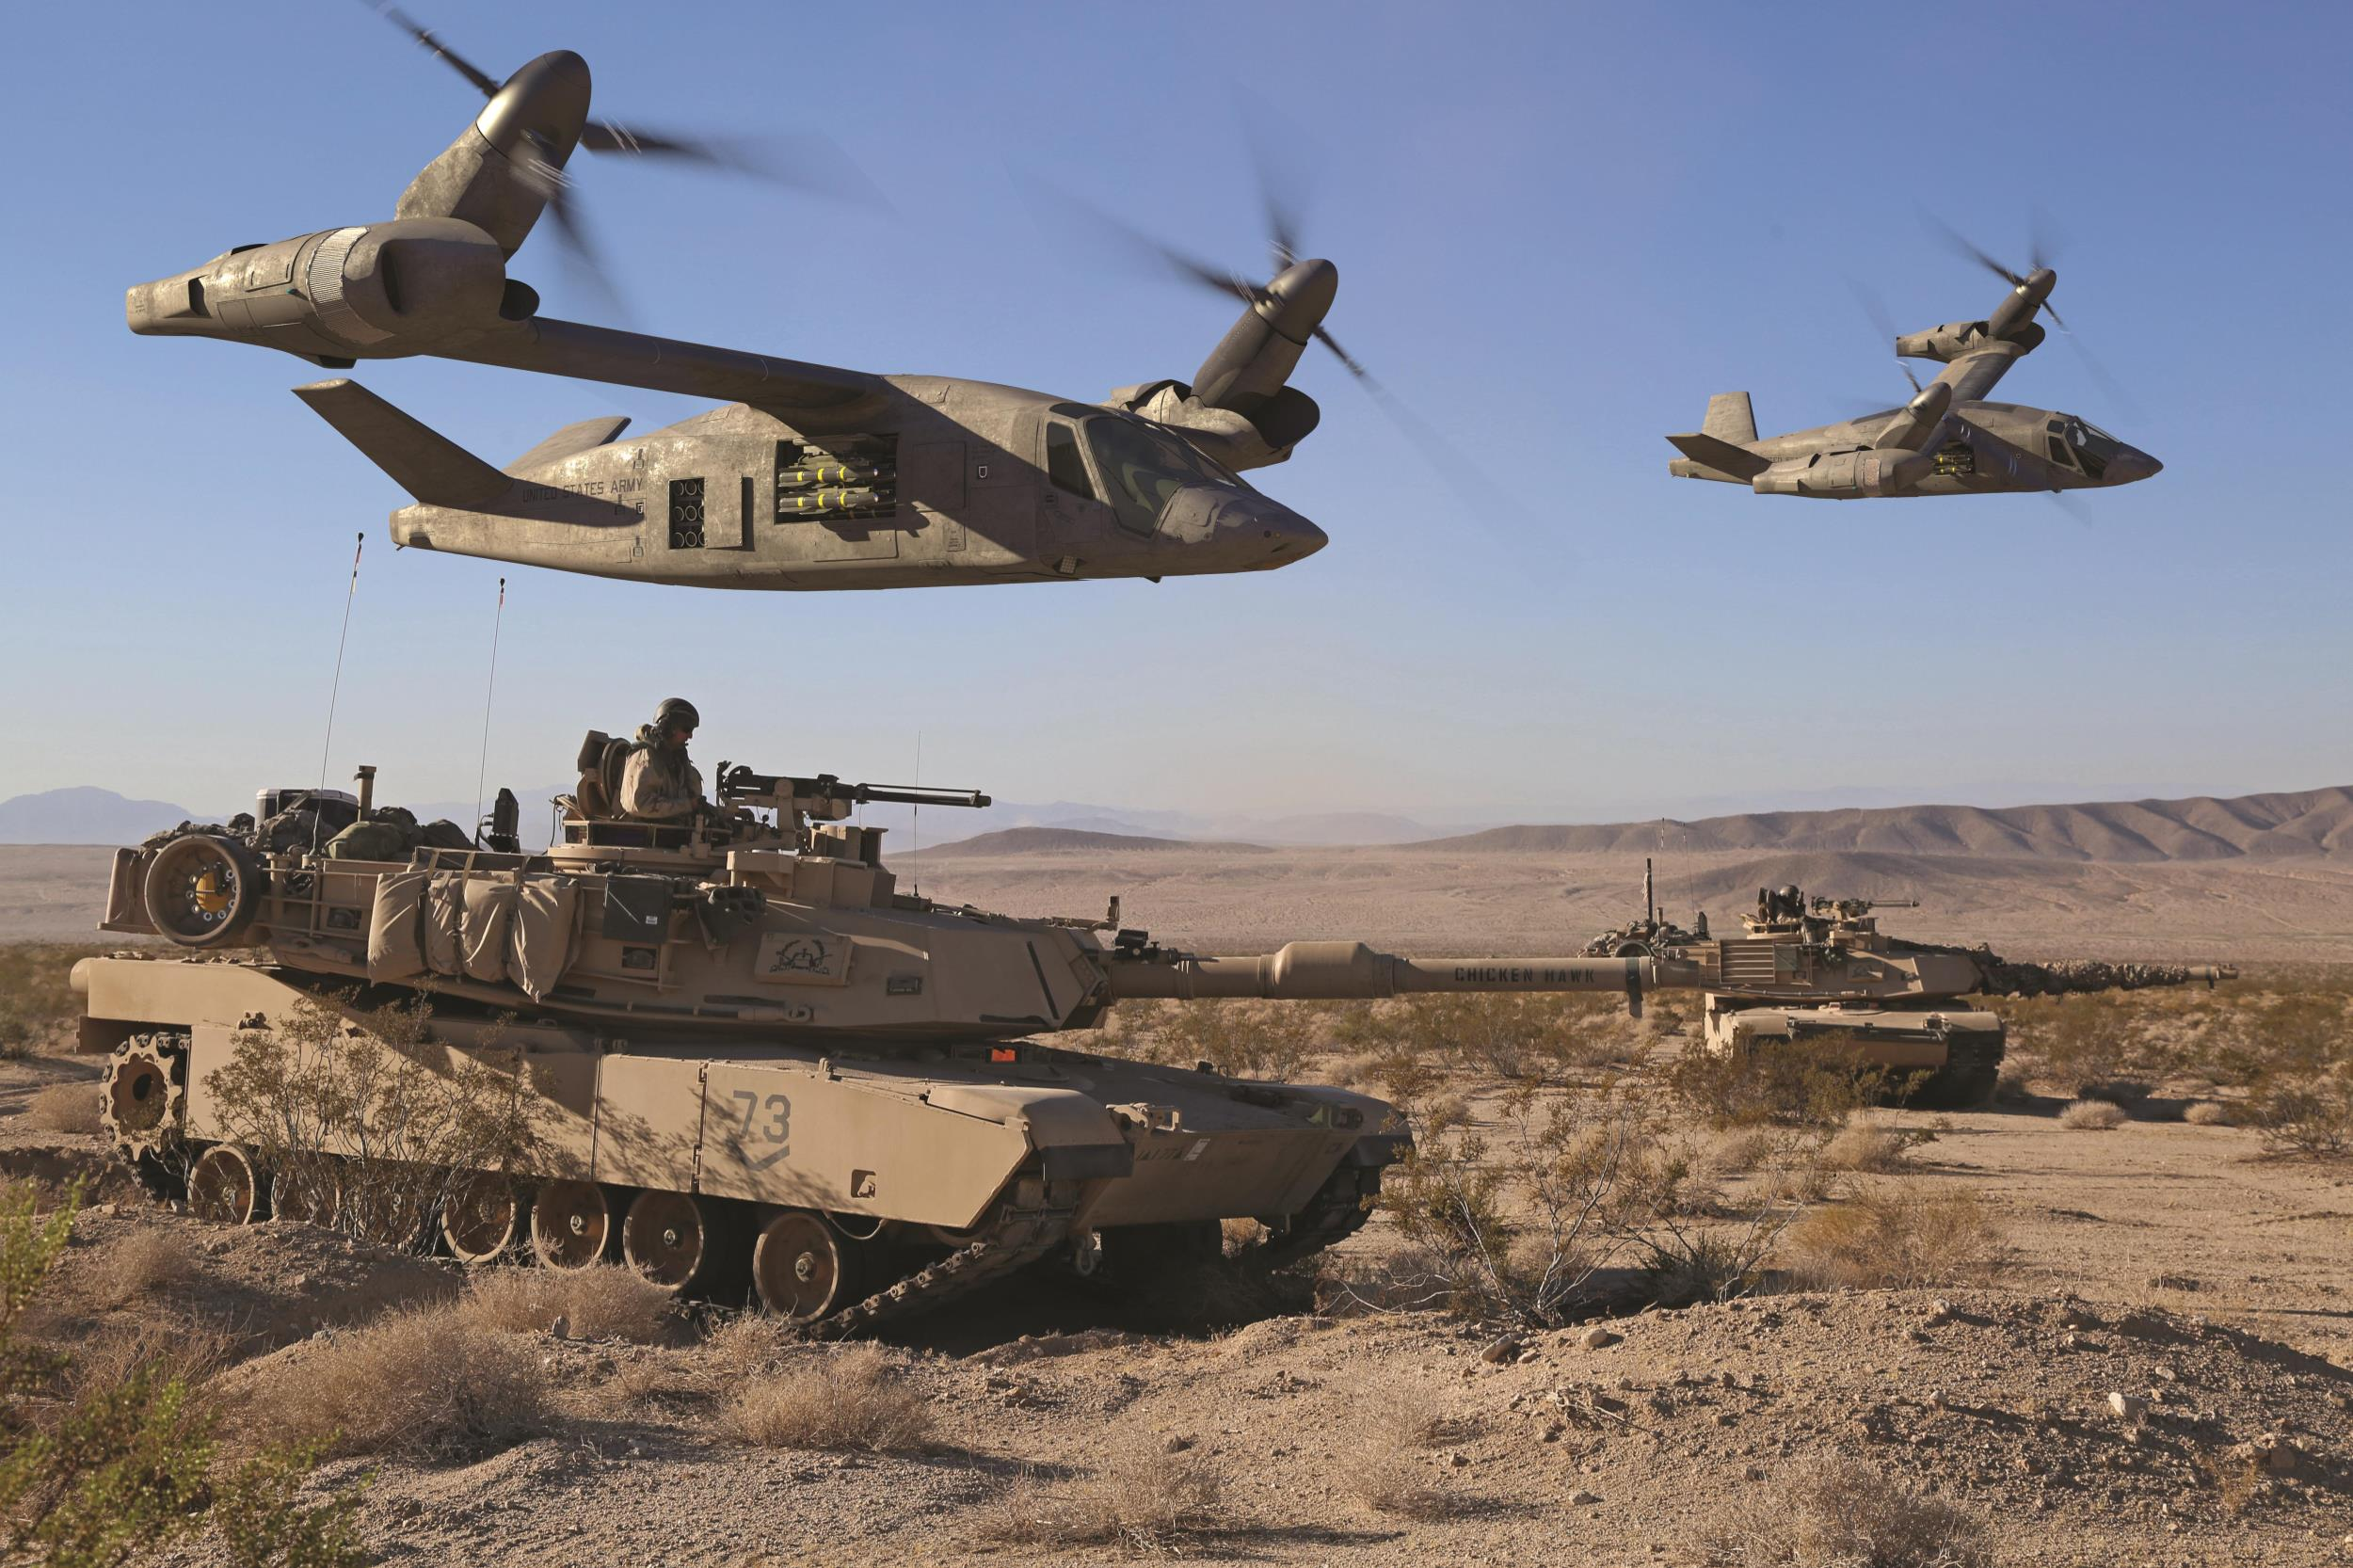 A Bell rendering of V-280 Valor tiltrotors operating with M1A2 Abrams main battle tanks.